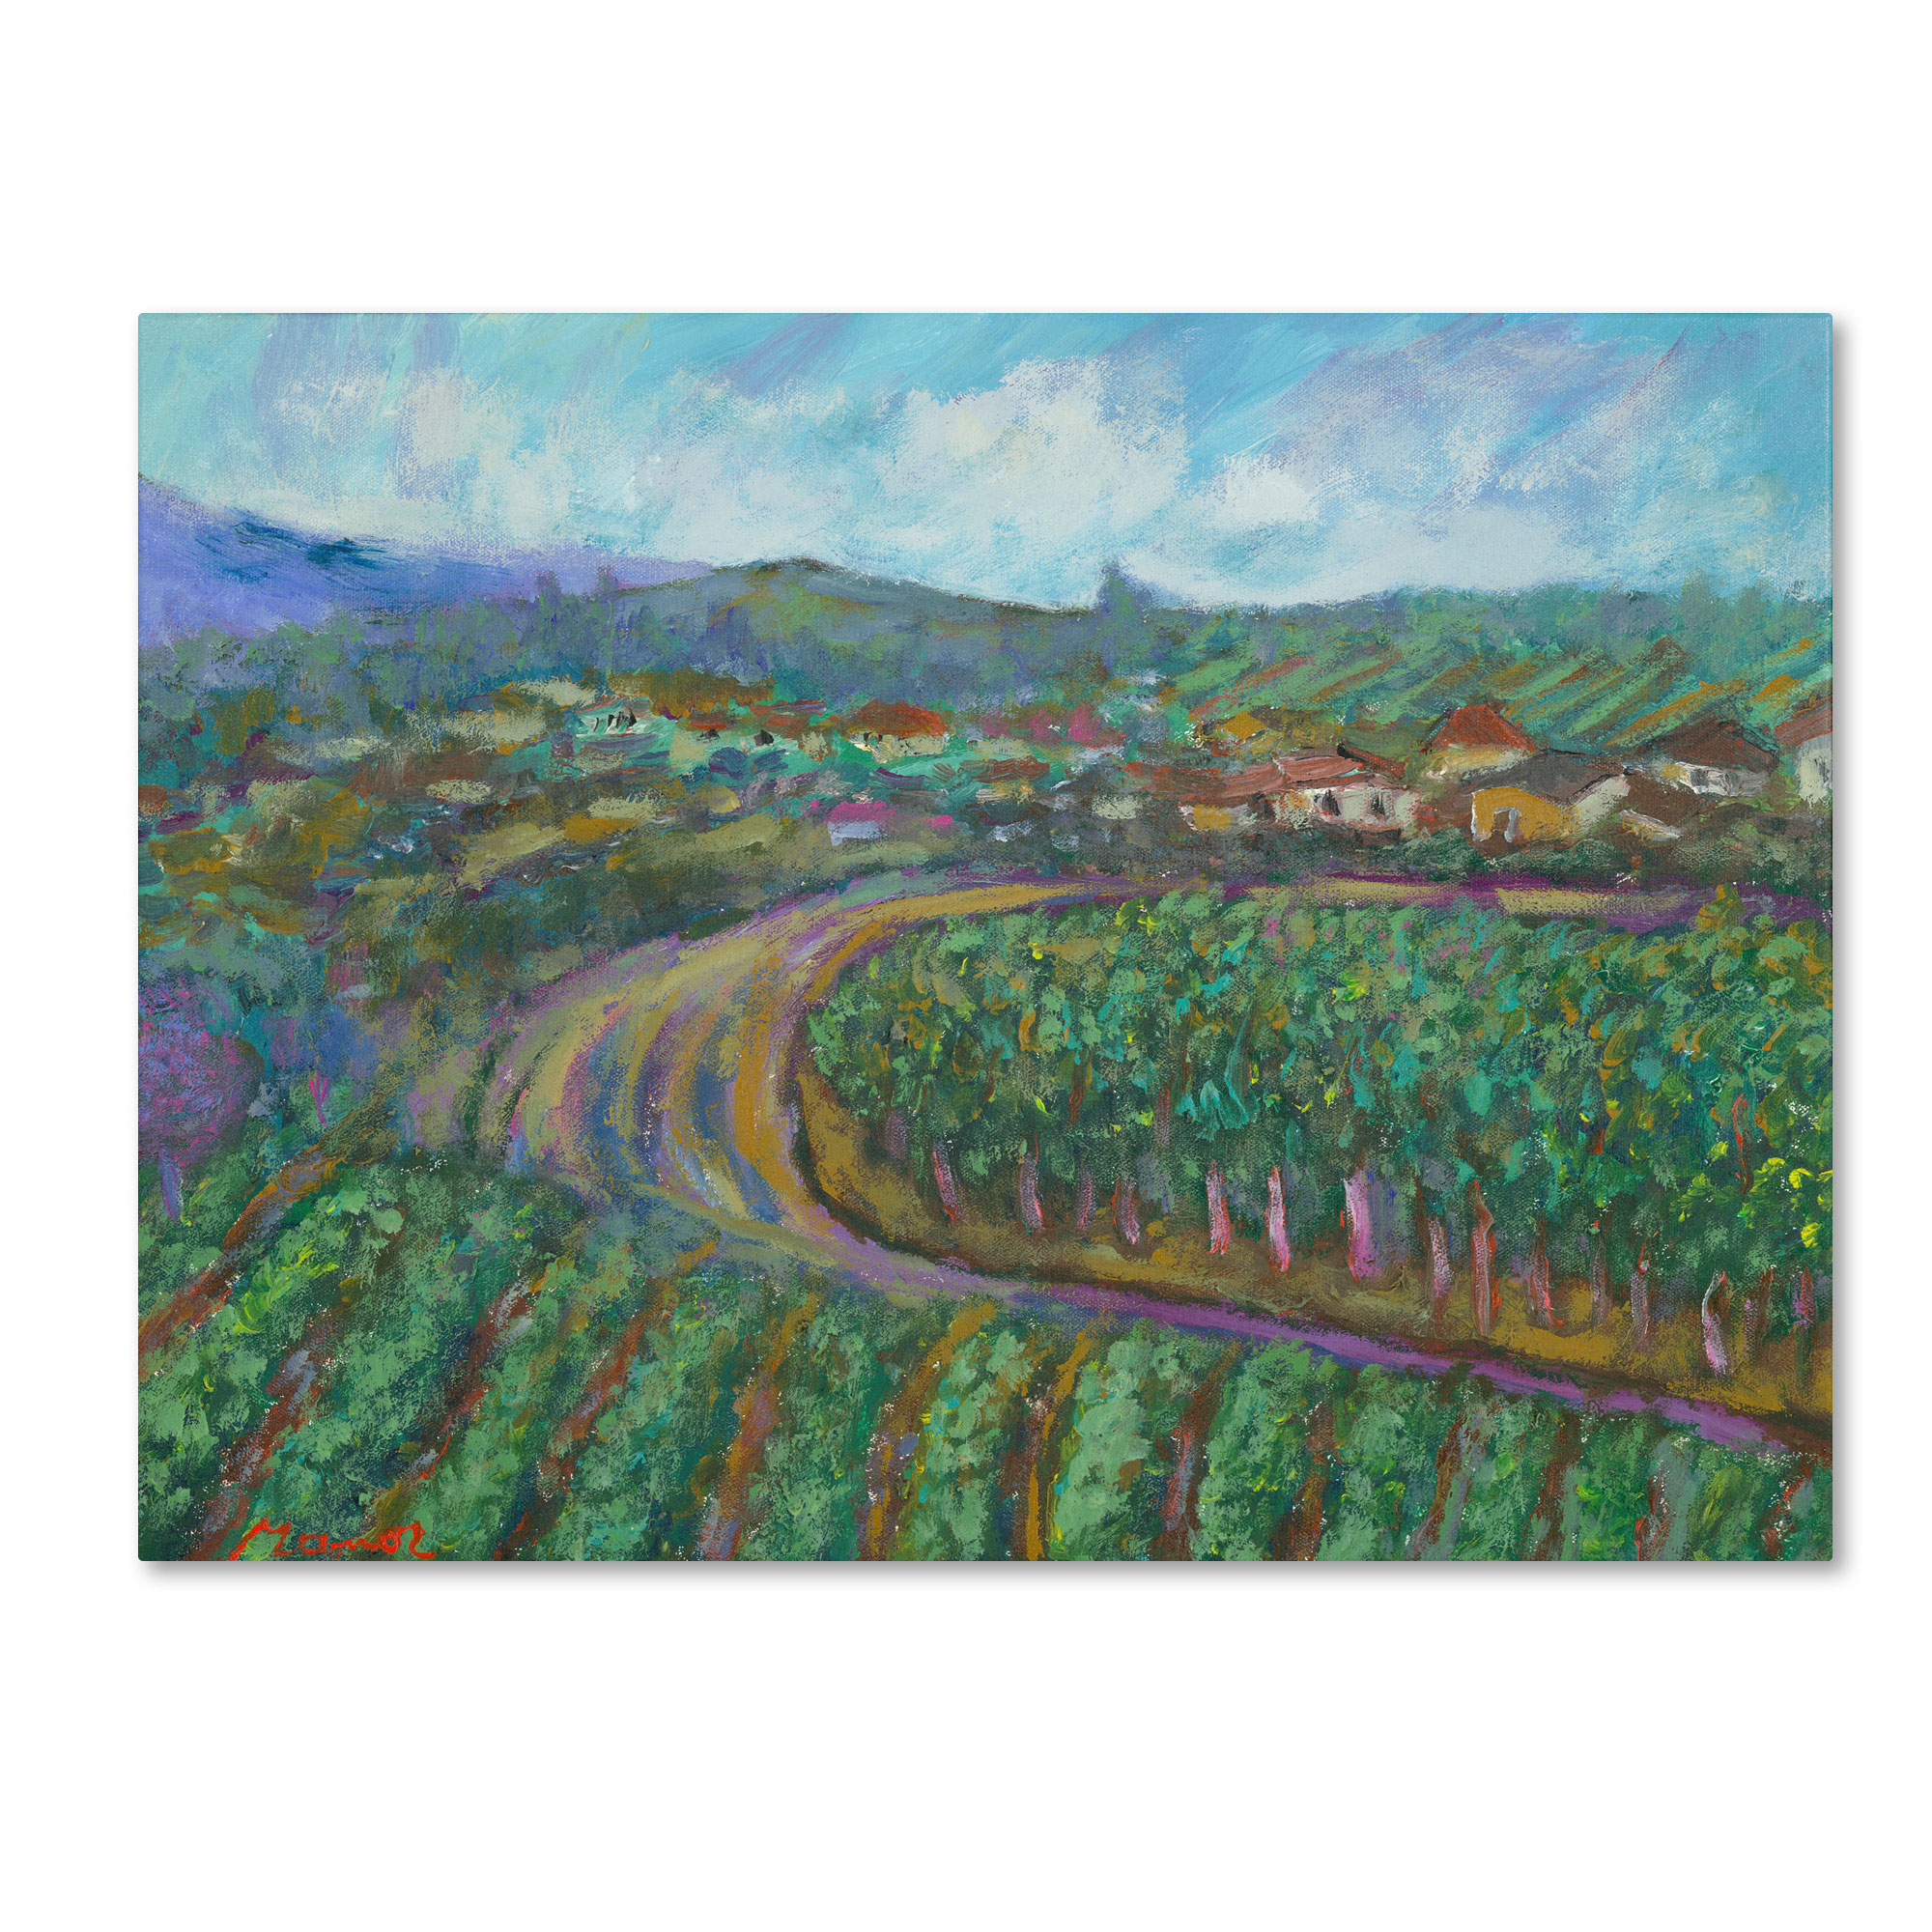 Manor Shadian 'Cherry Trees and Strawberry Fields' Canvas Wall Art 35 x 47 Inches